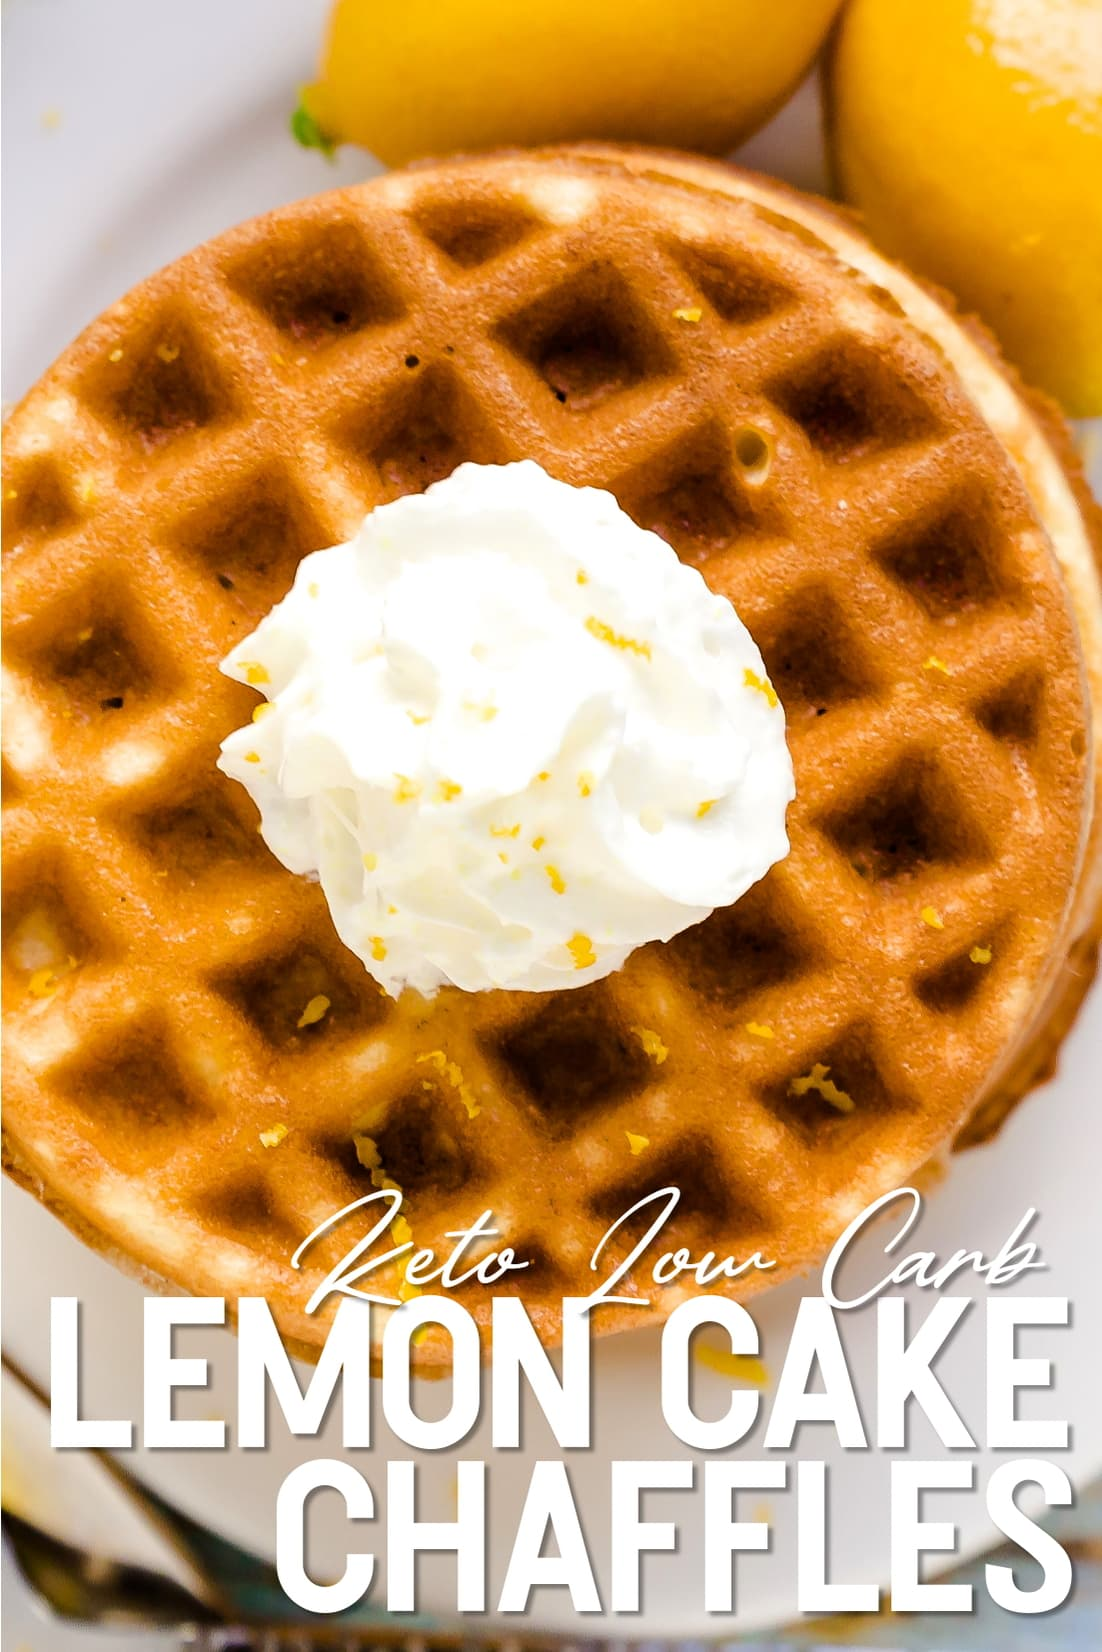 Lemon Cake Chaffles with whip cream top down shot